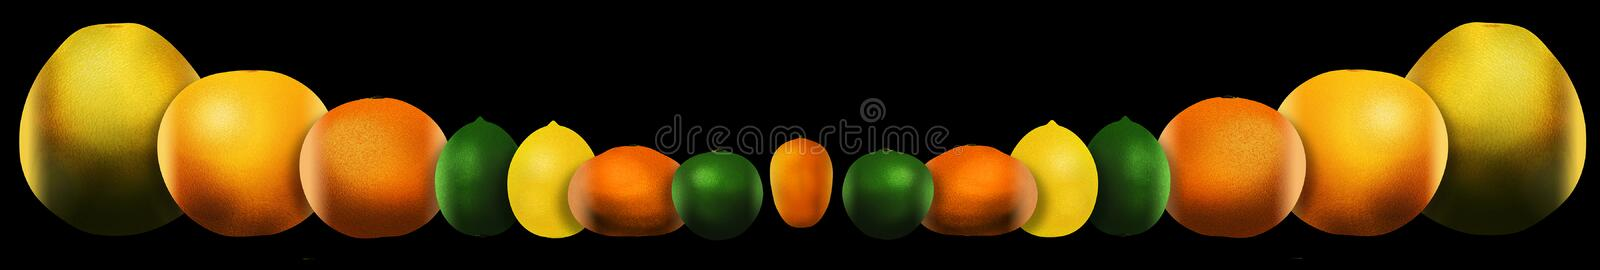 Eight popular citrus fruits are pictured. These include: pomelo. Grapefruit, orange, lime, lemon, tangerine, key lime and kumquat. This is an illustration royalty free illustration